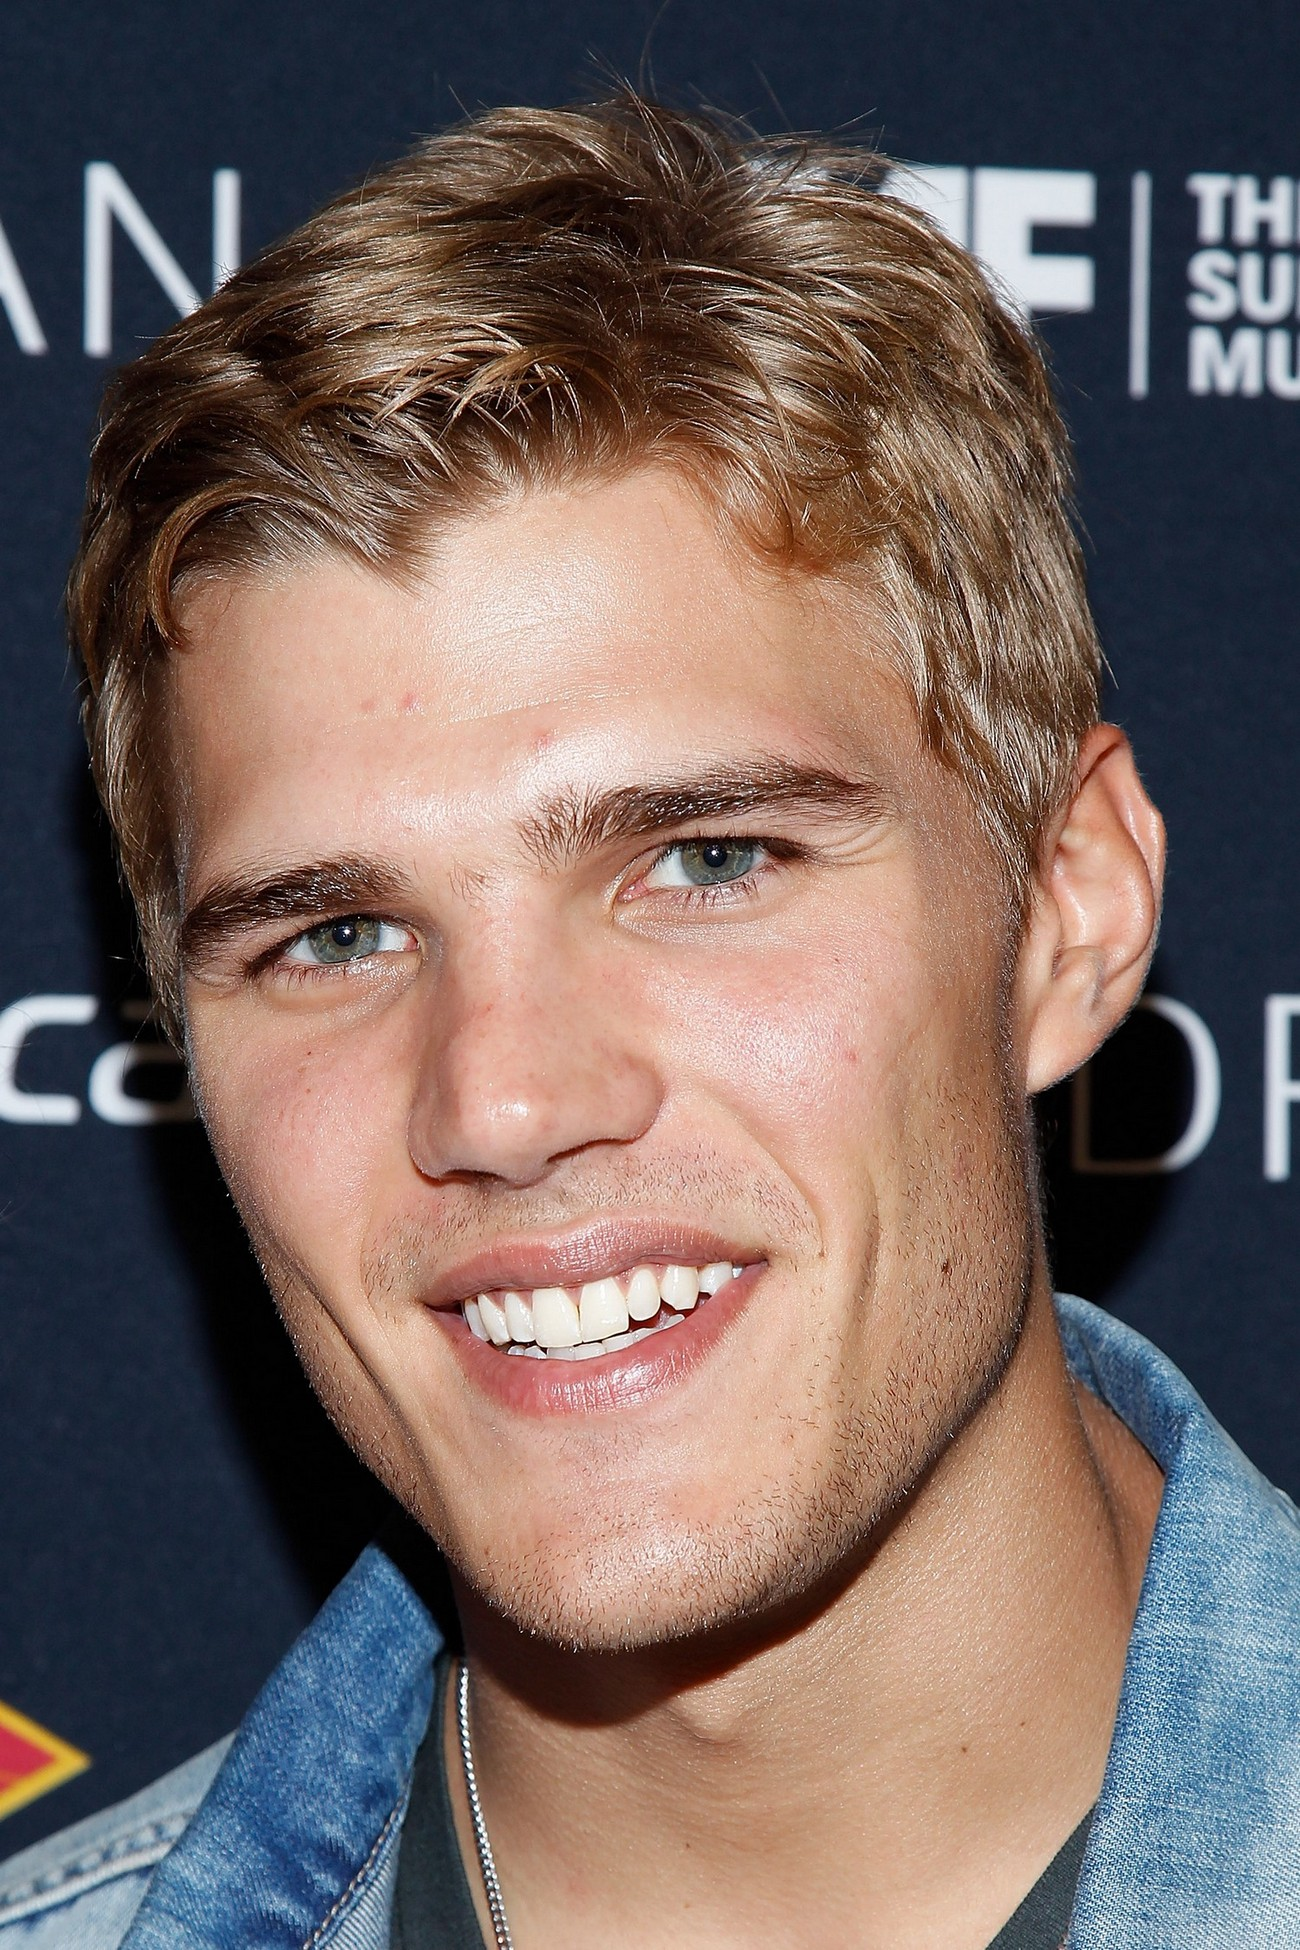 Chris Zylka photo 7 of 8 pics, wallpaper - photo #493003 ... Paris Hilton